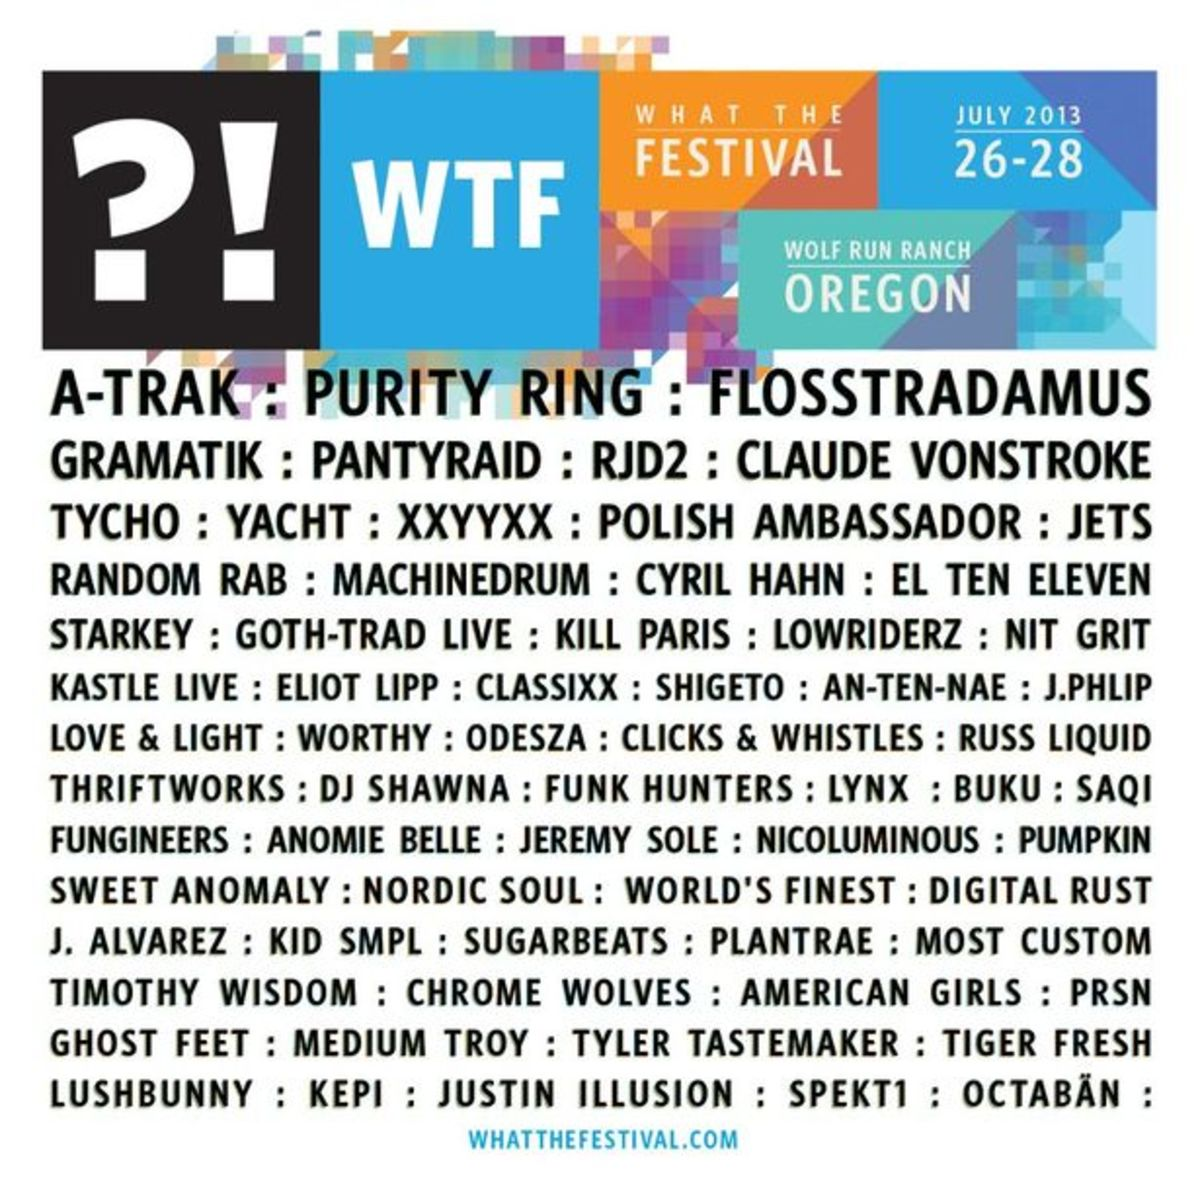 EDM Event: What The Festival Kicks Off Friday Outside Of Portland; A-Trak, Yacht, Purity Ring, Claude VonStroke, Flosstradamus And More